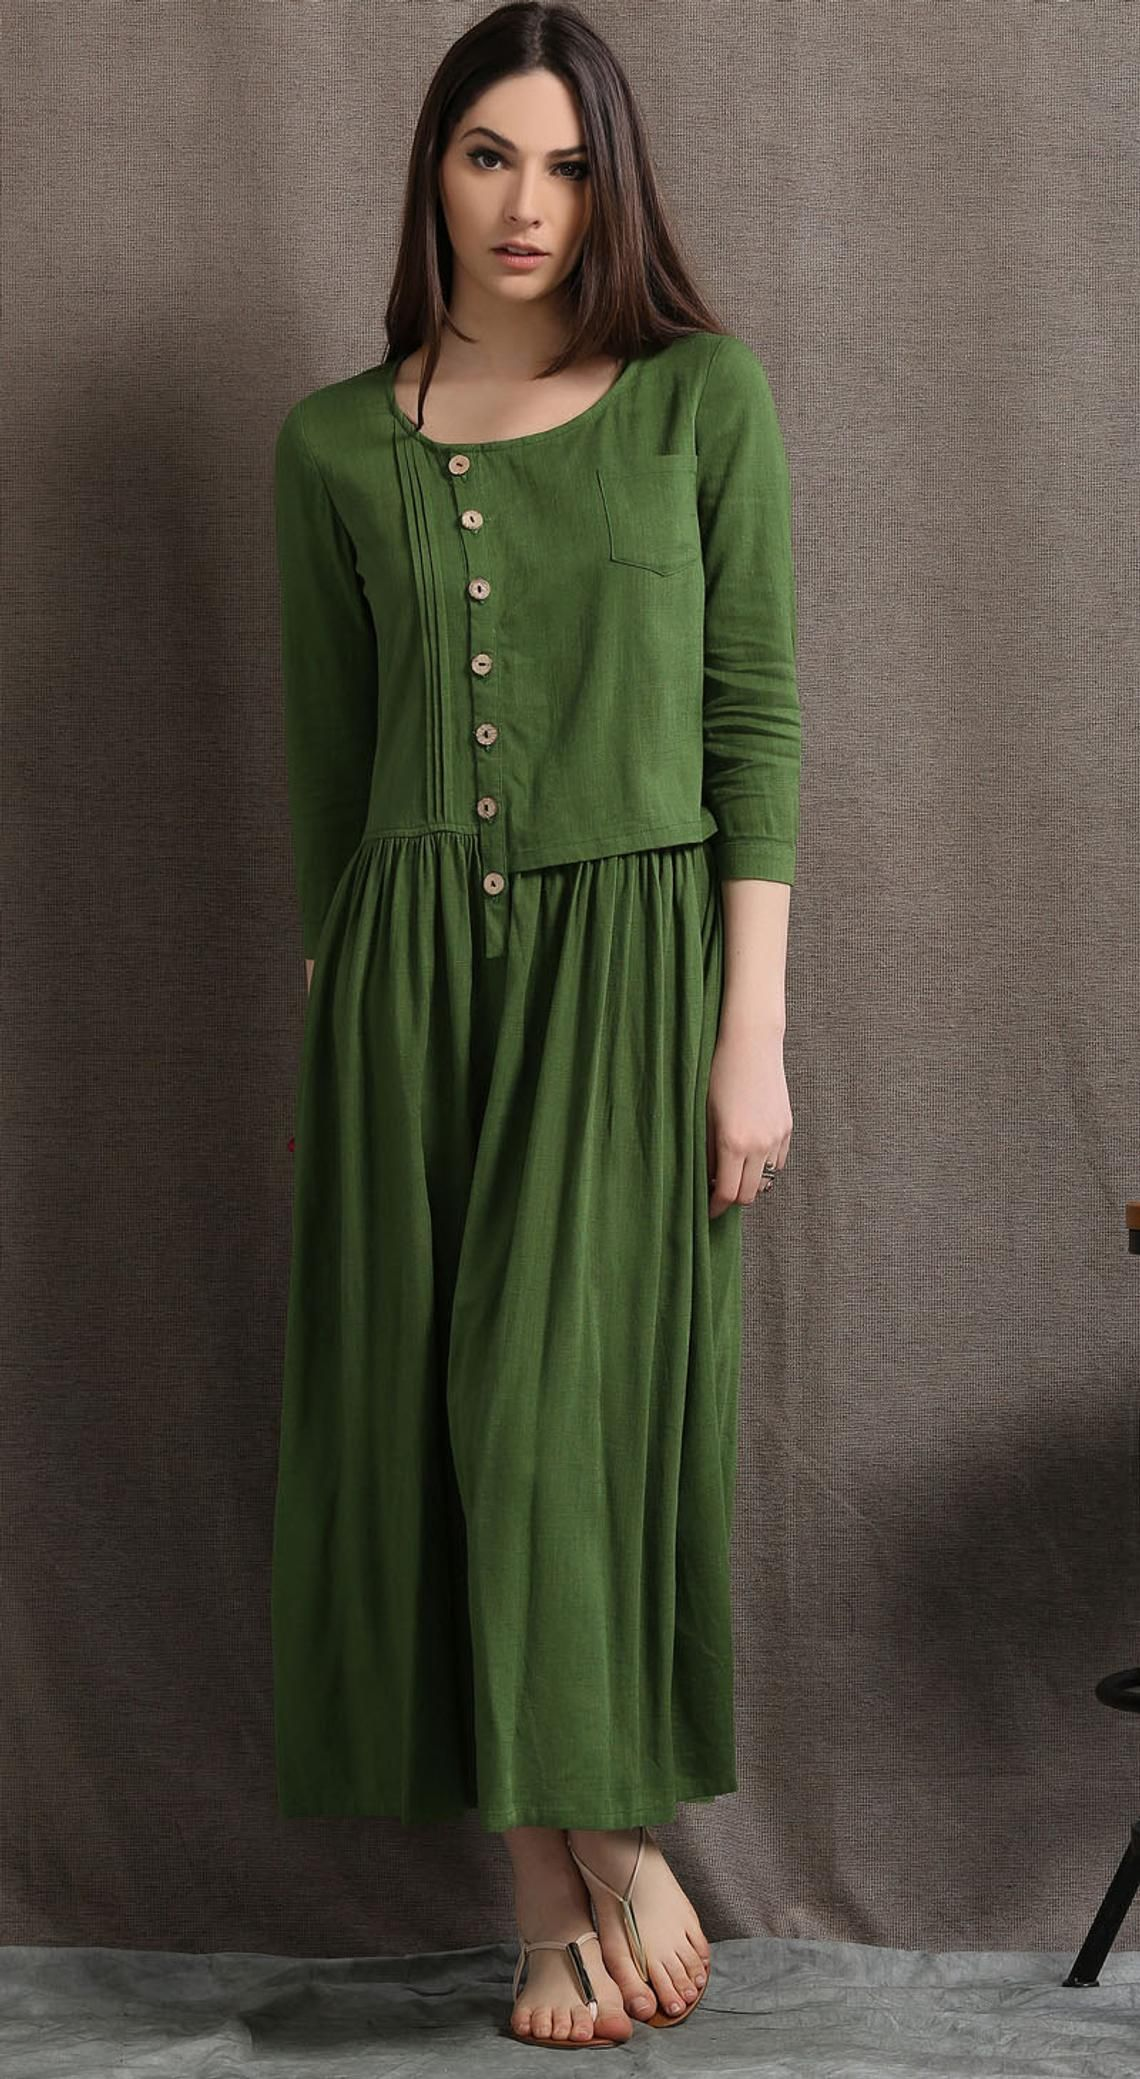 0eea1c6360 Green Linen dress long linen dress womens dresses linen